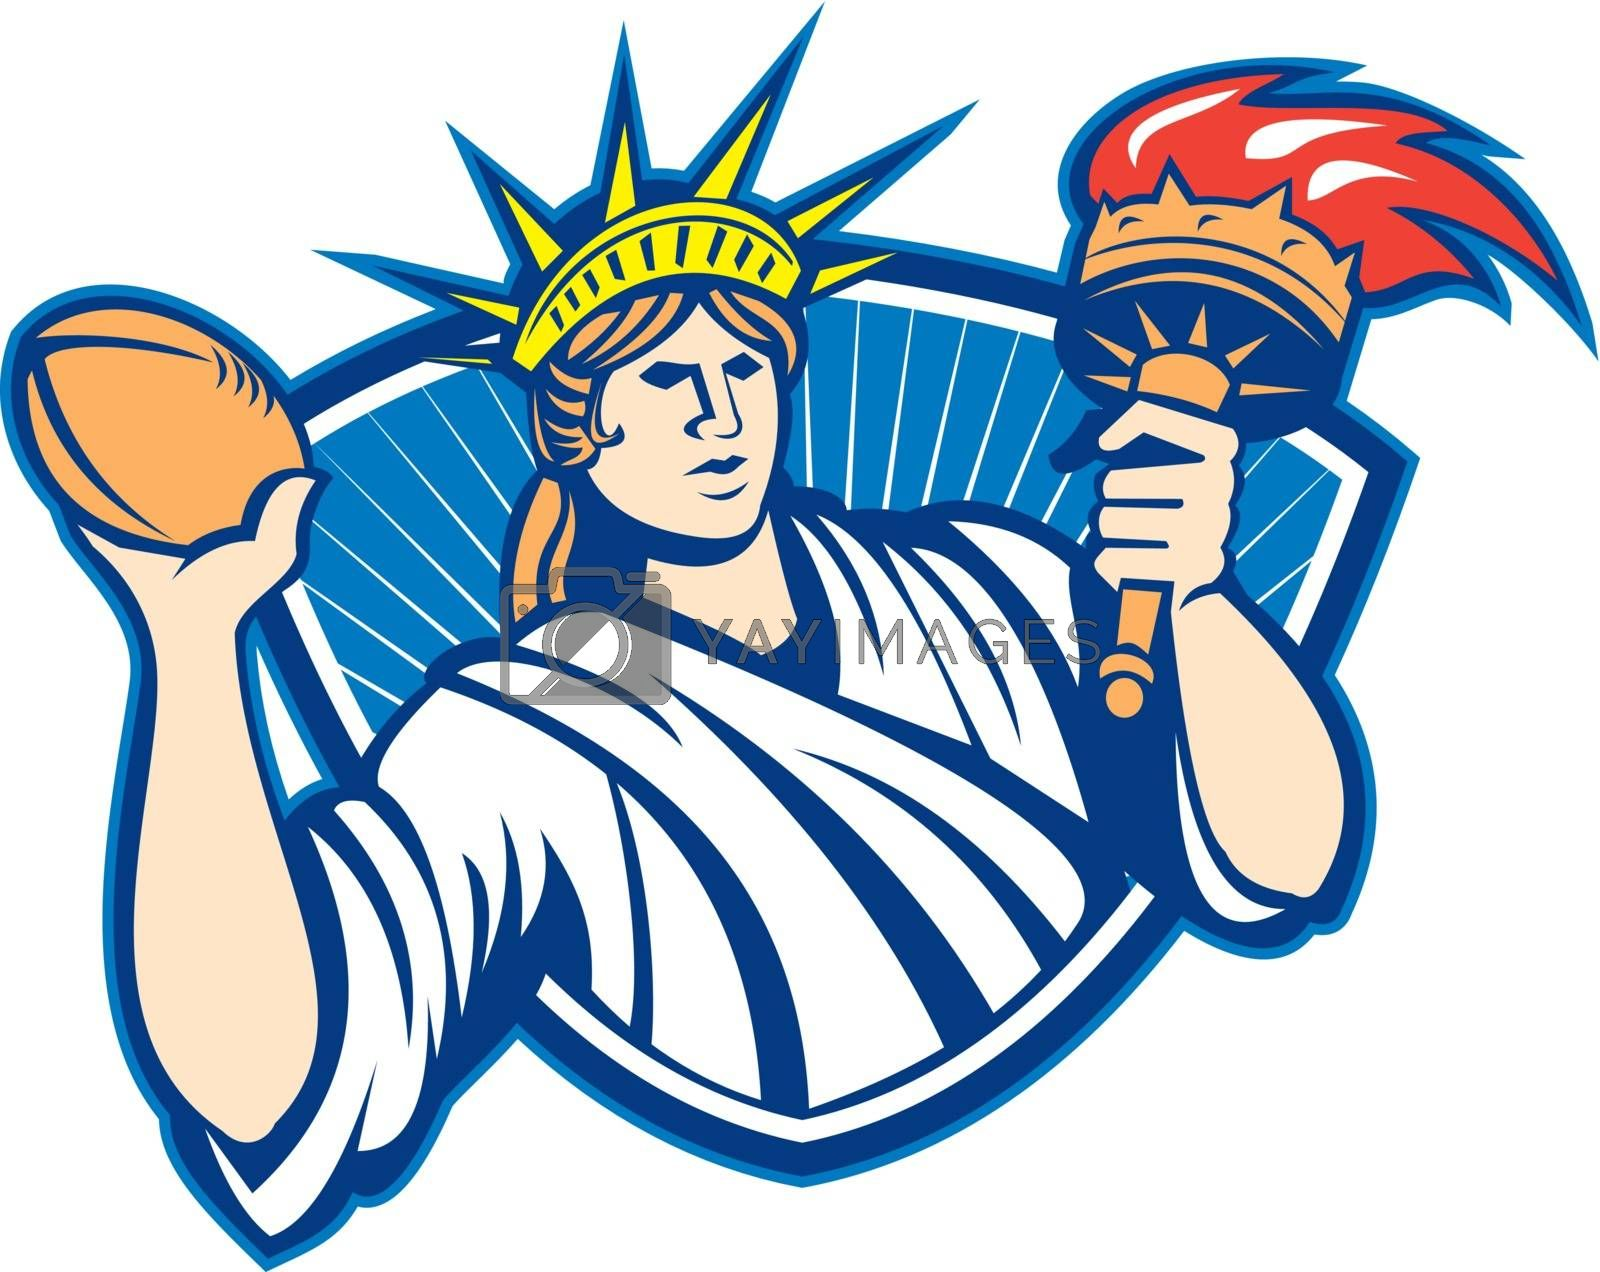 Illustration of statue of liberty throwing American football rugby ball holding torch on isolated white background.